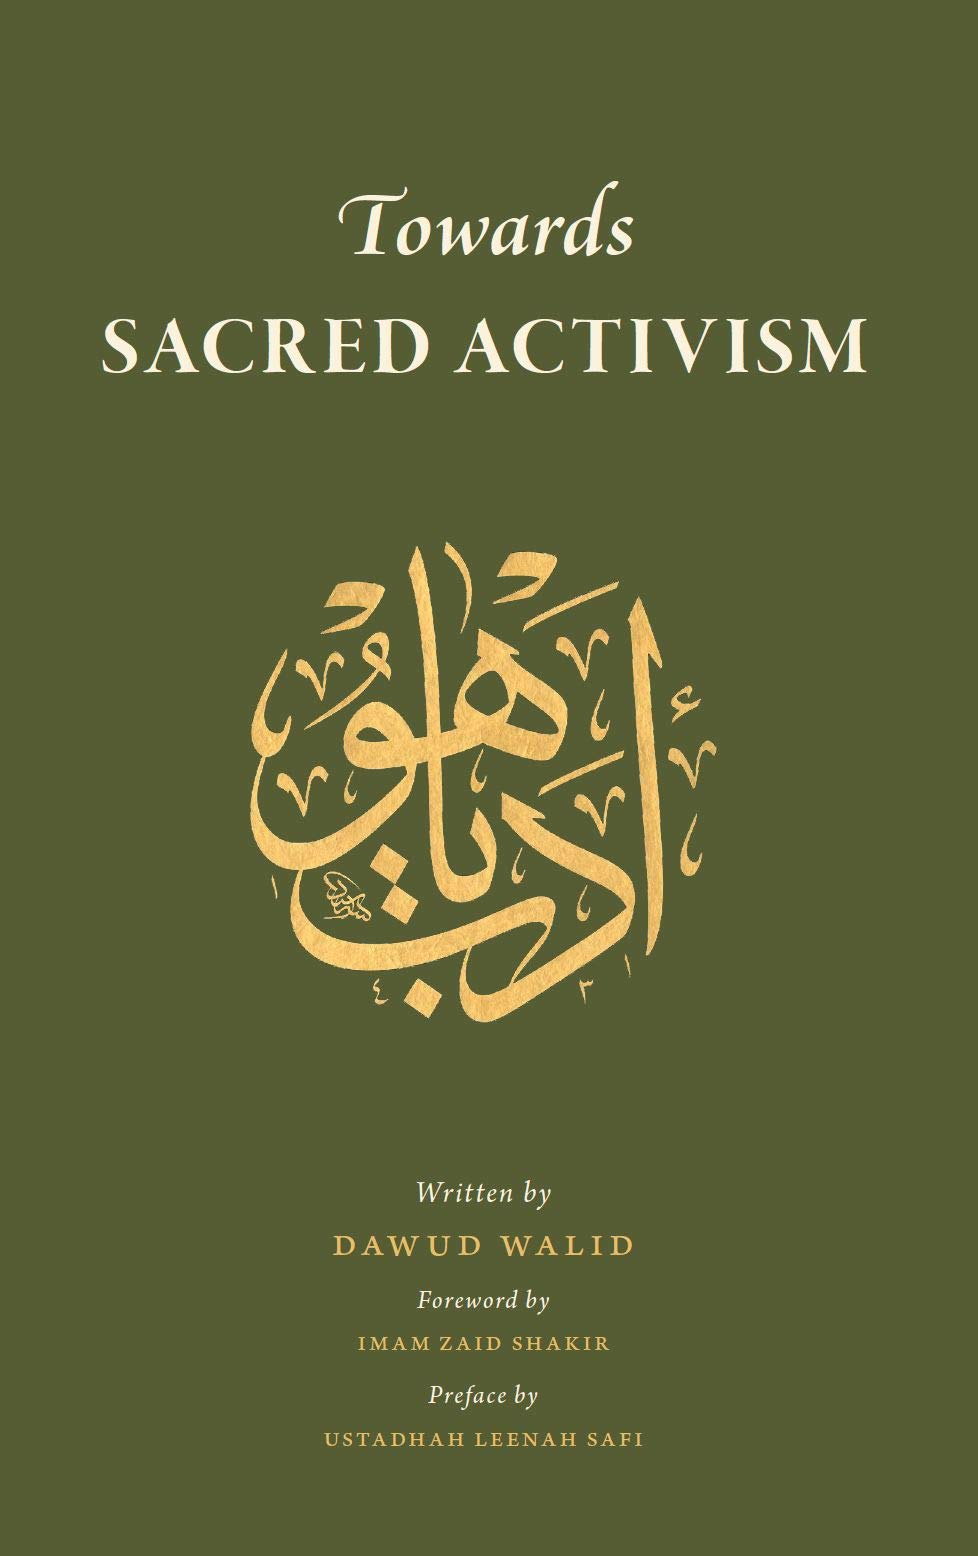 Towards Sacred Activism: Dawud Walid: 9781732258815: Amazon.com: Books